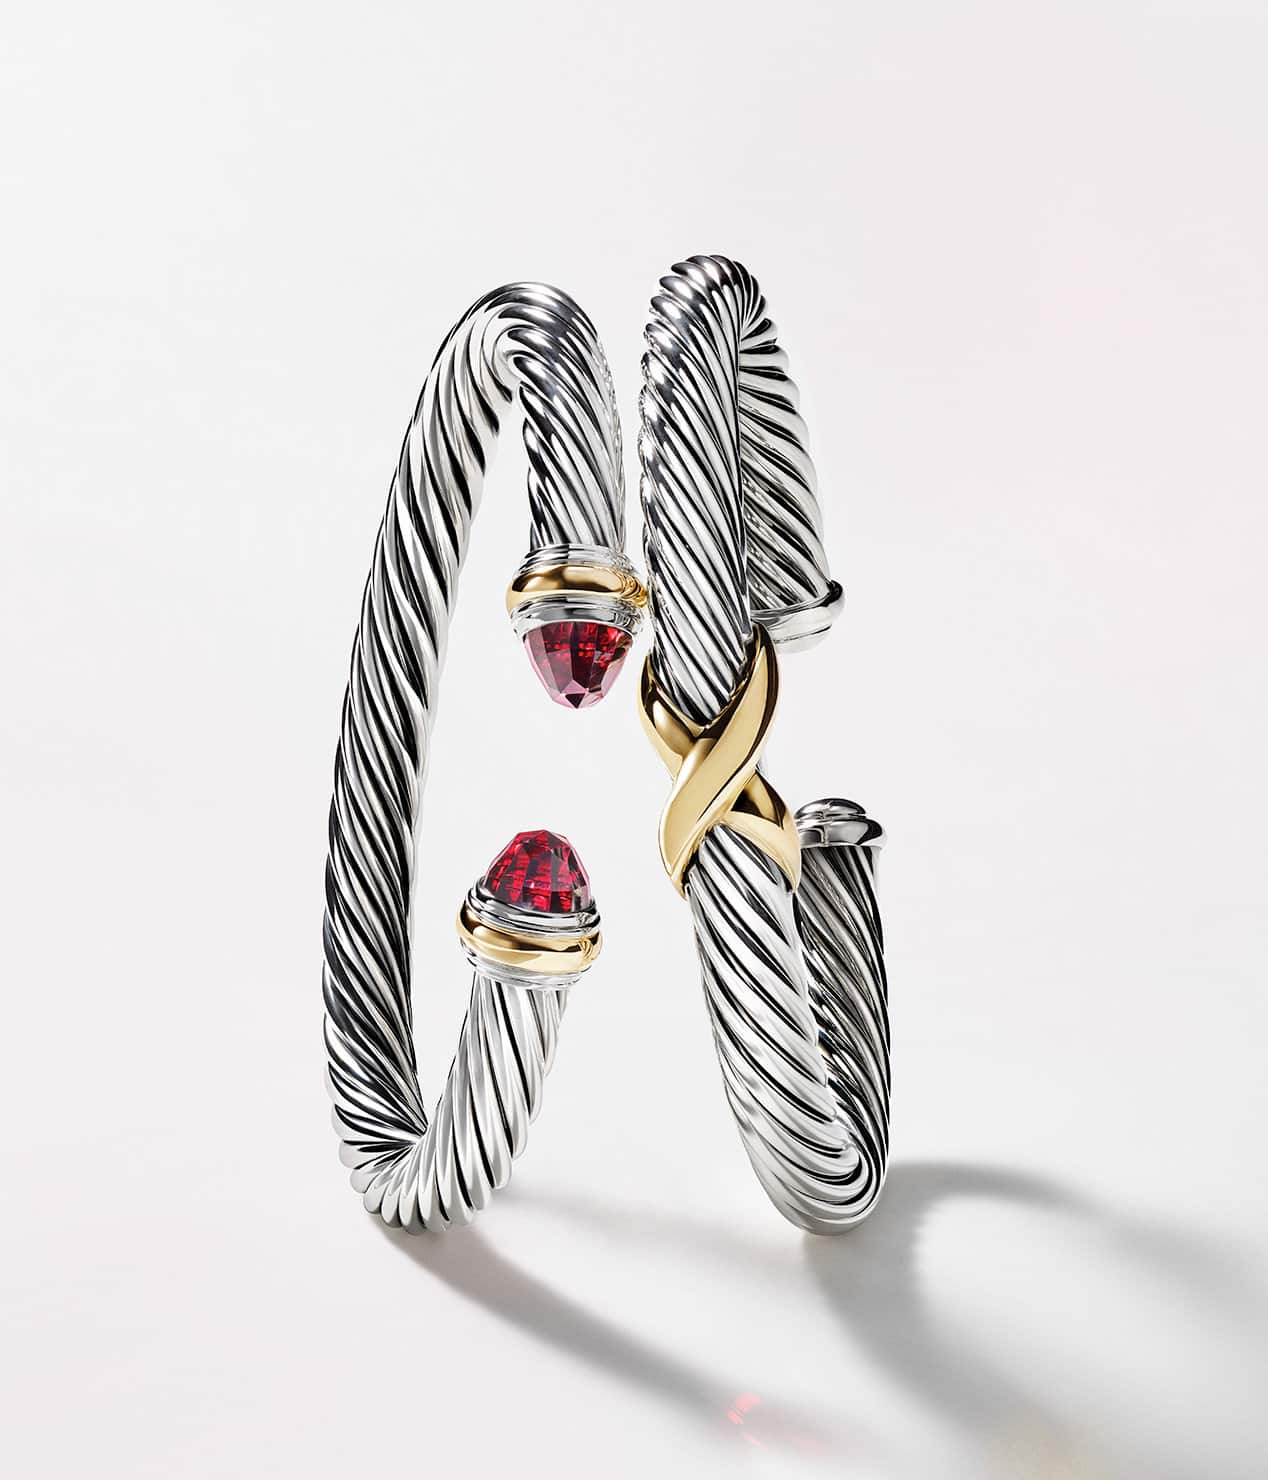 A color photograph shows two David Yurman Cable bracelets balancing against each other in front of a white background. The women's jewelry is crafted from sterling silver with 14K yellow gold accents.